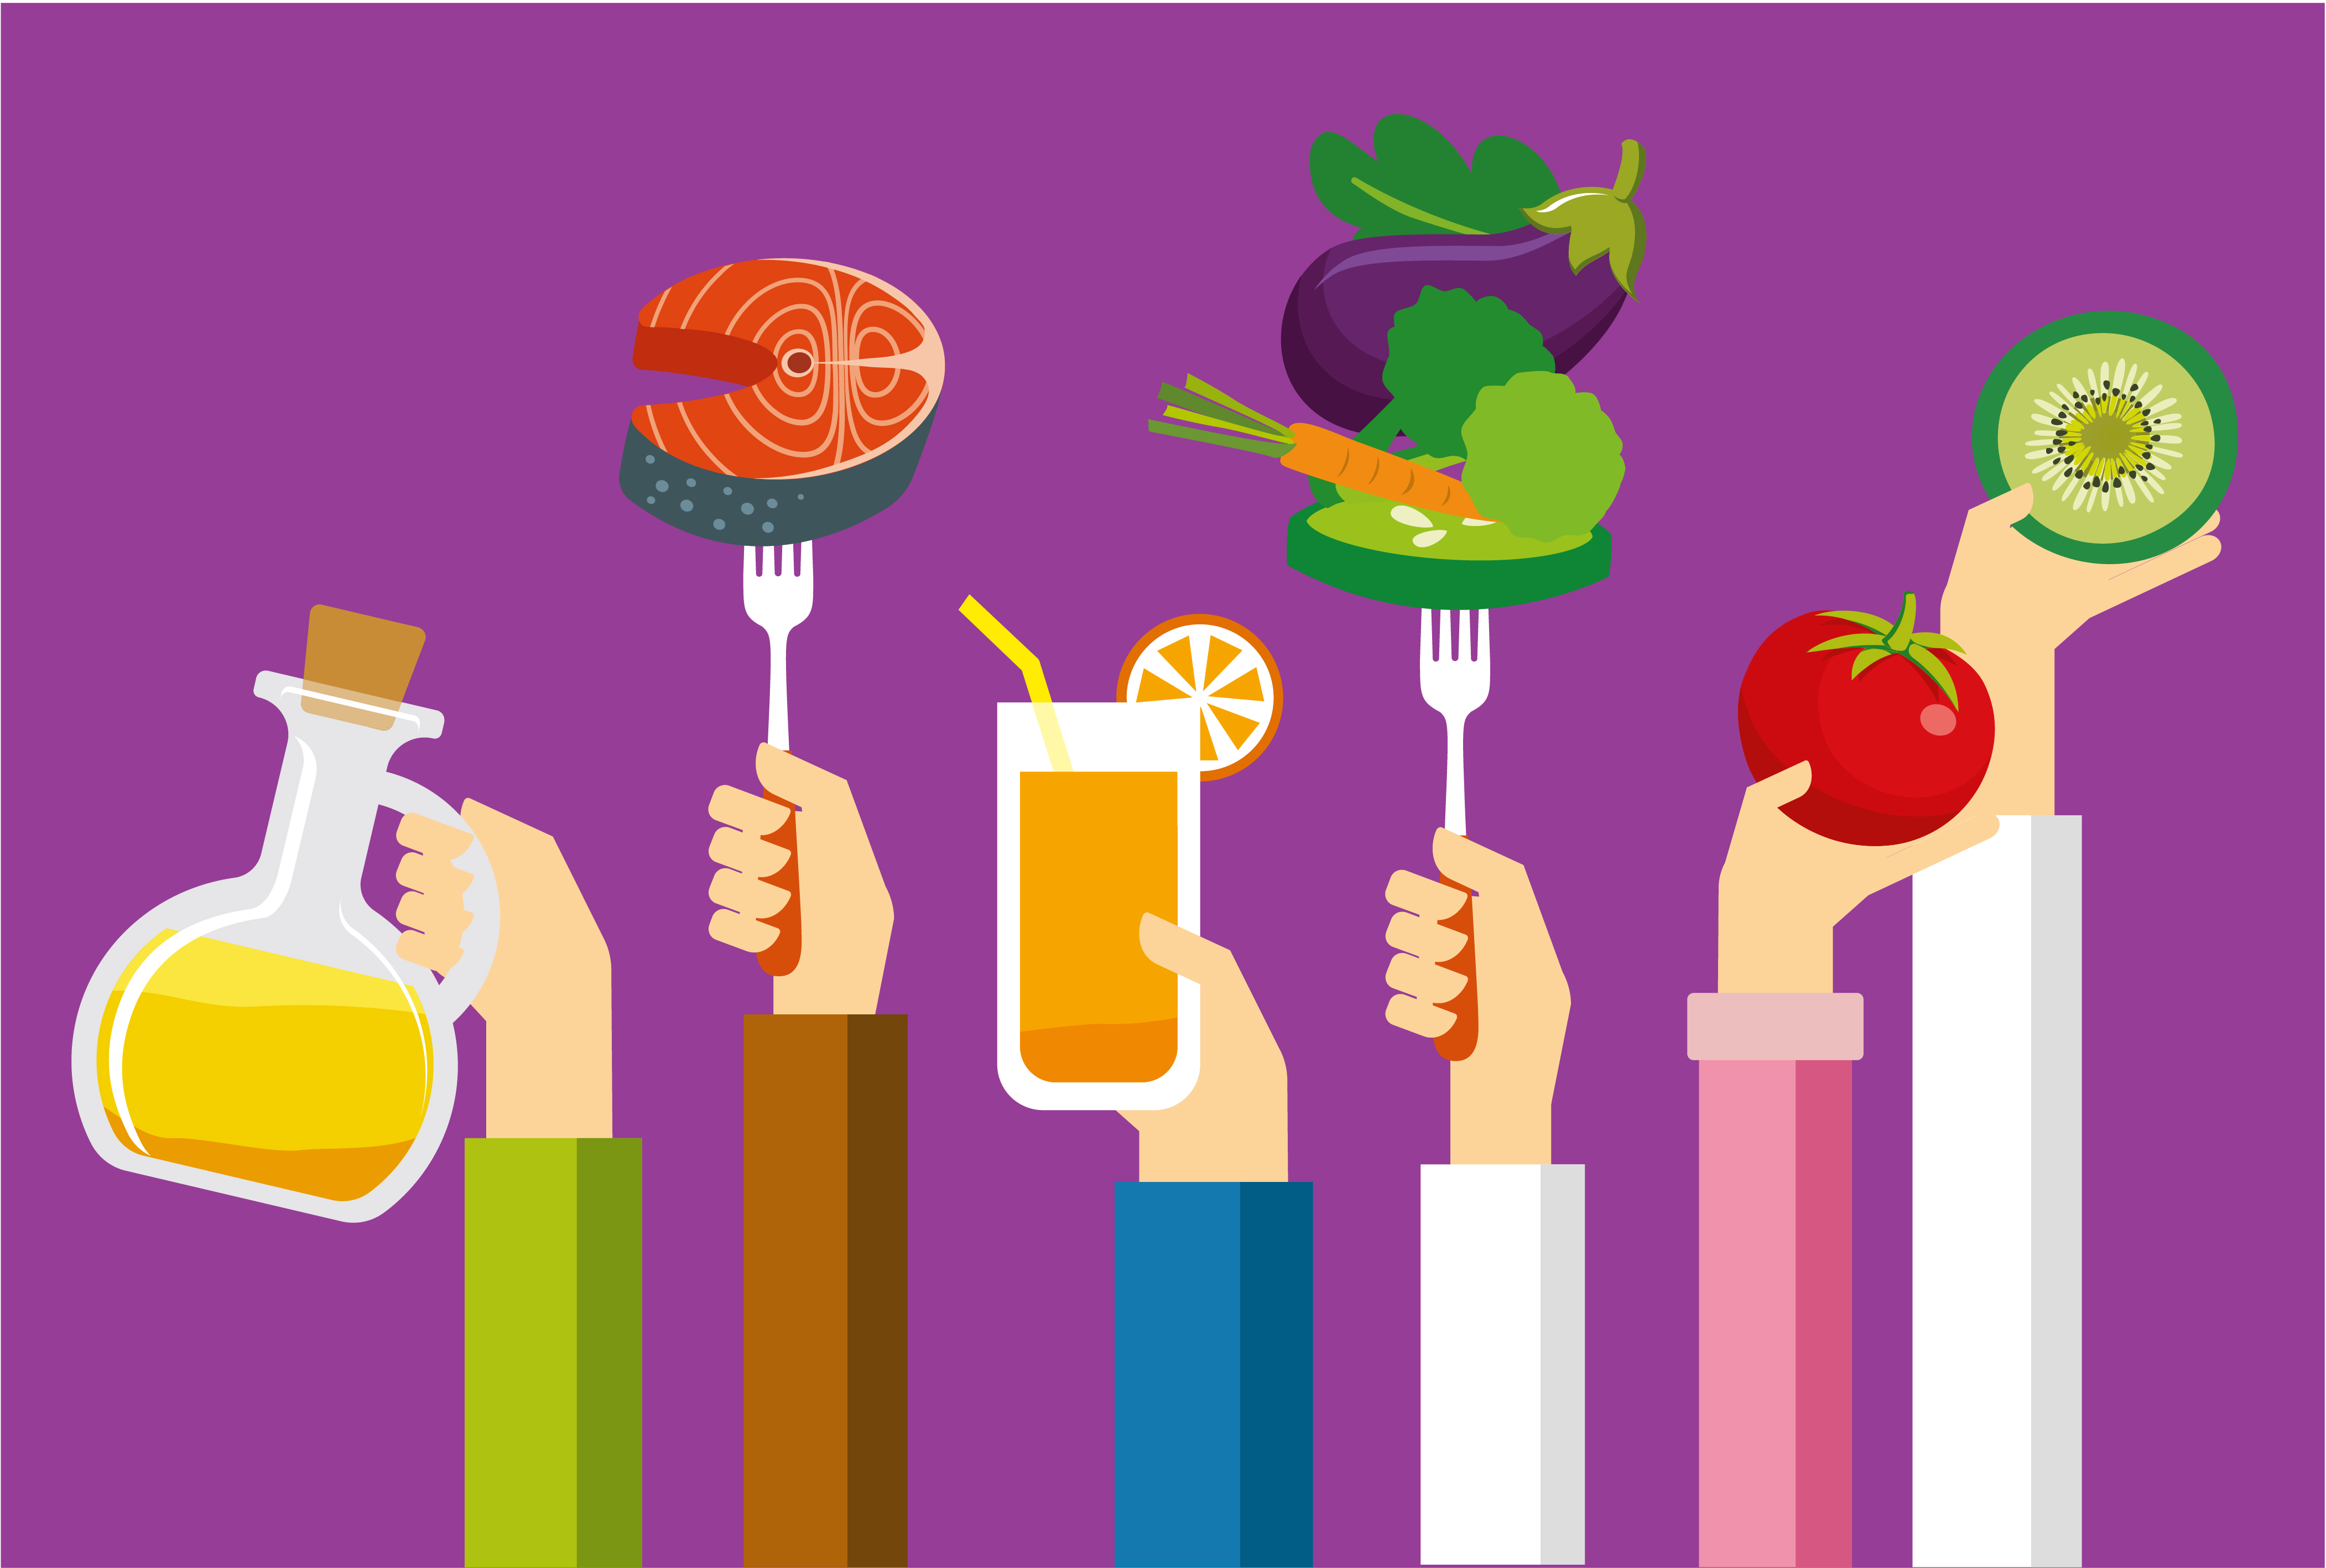 Illustration of people holding up various food and drink types, with the captions 'Health' and 'Nutrition' above